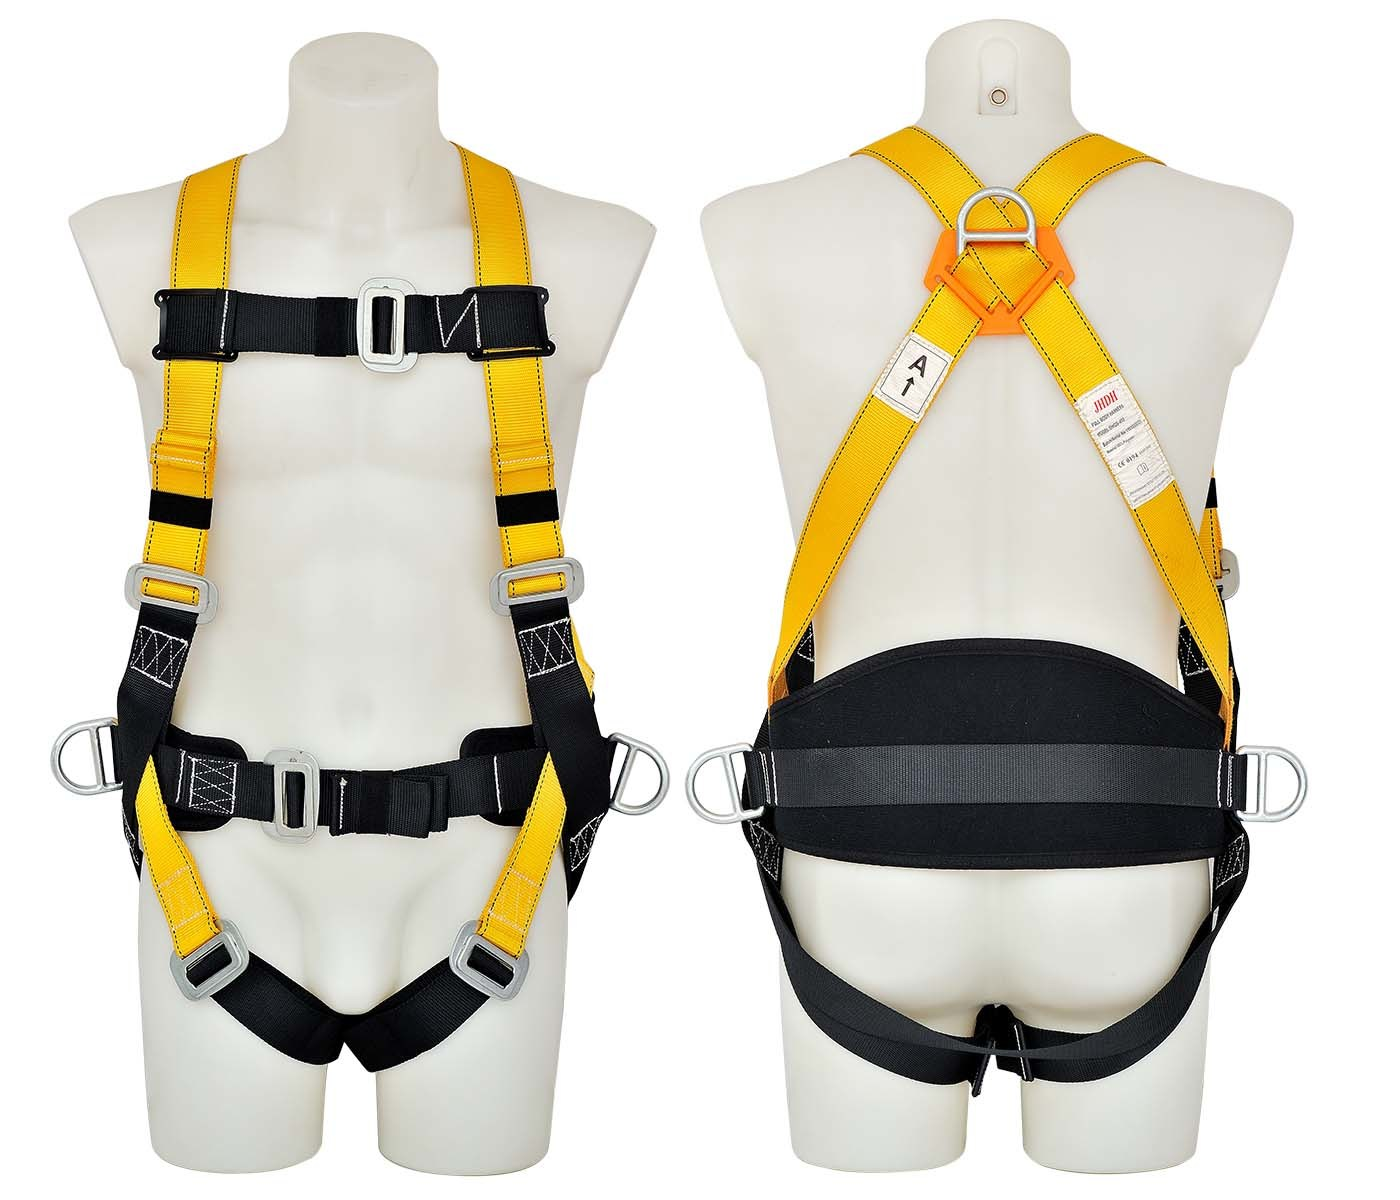 CE Approved Fall Protection Safety Harness